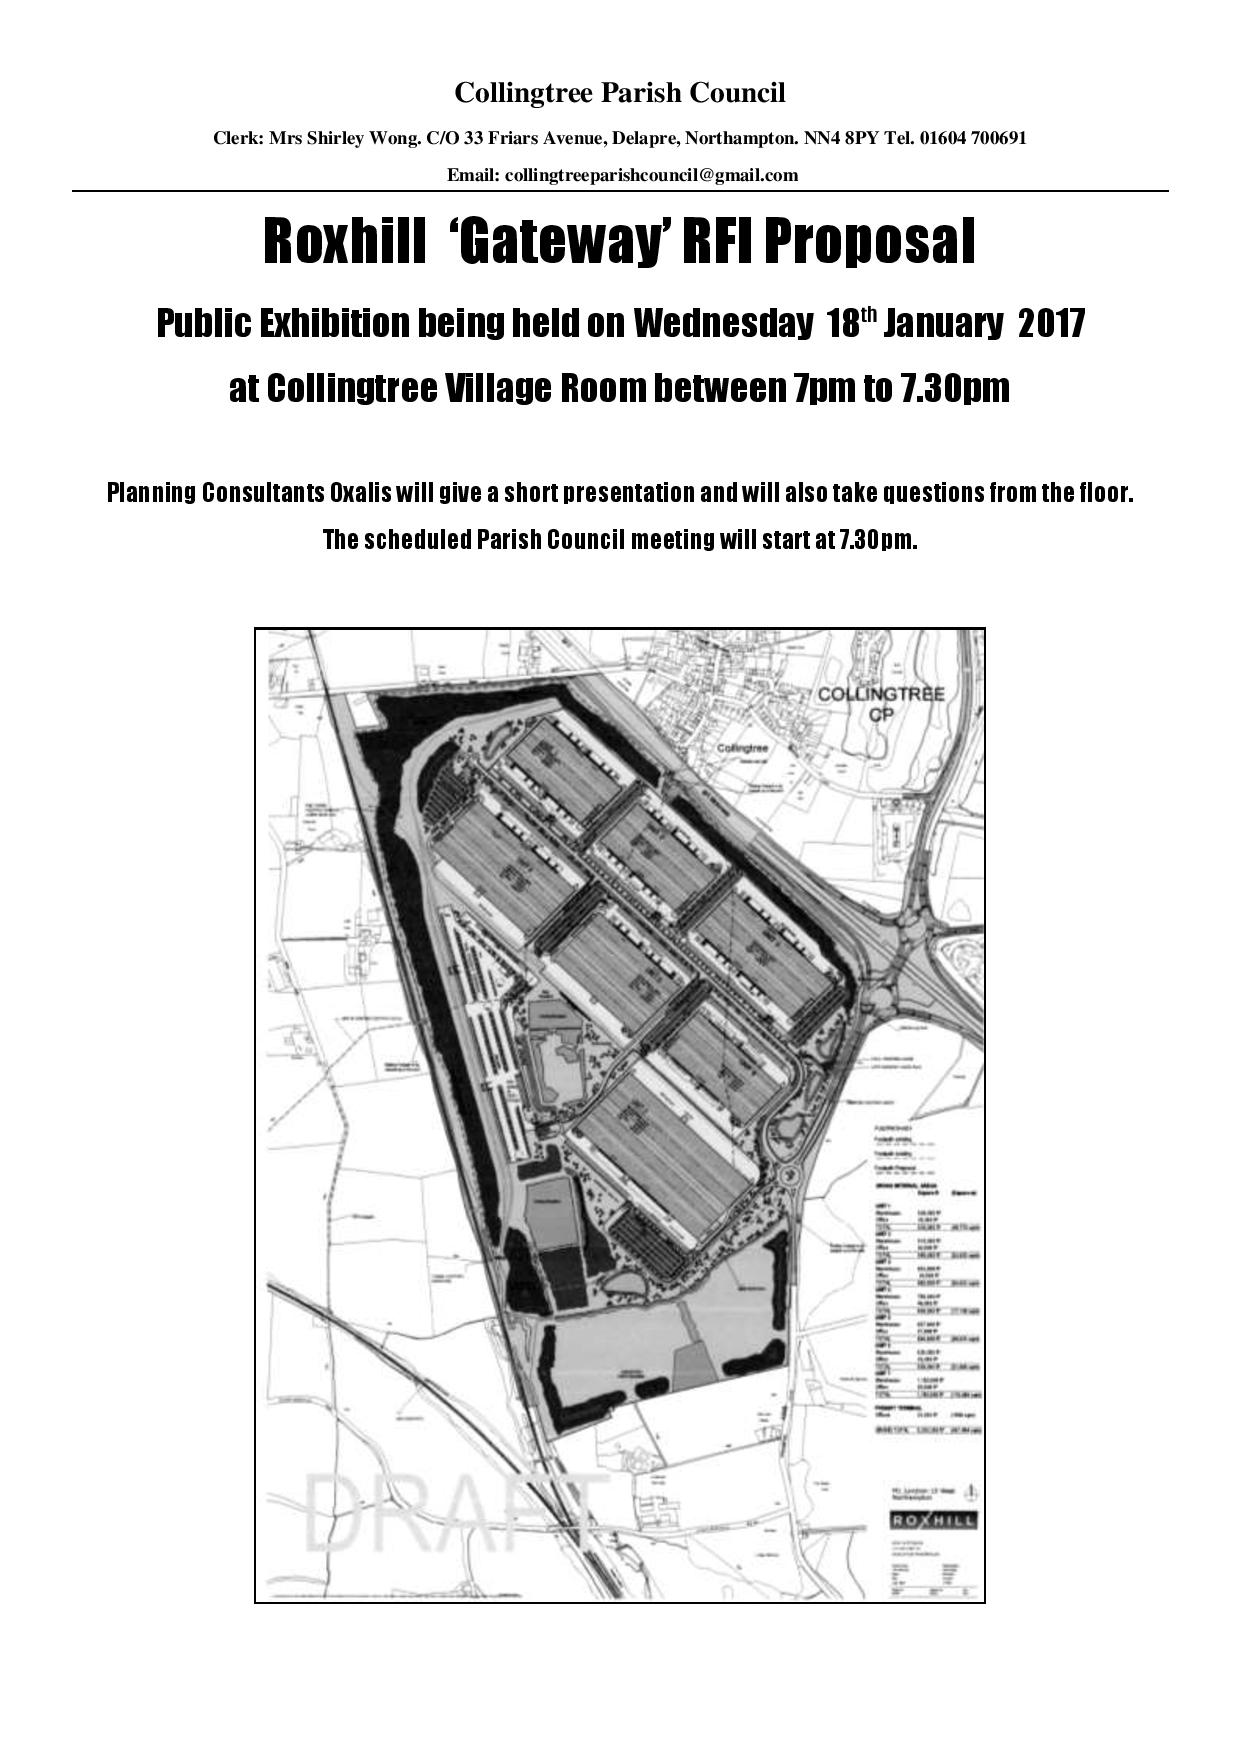 Collingtree Parish Council Planning